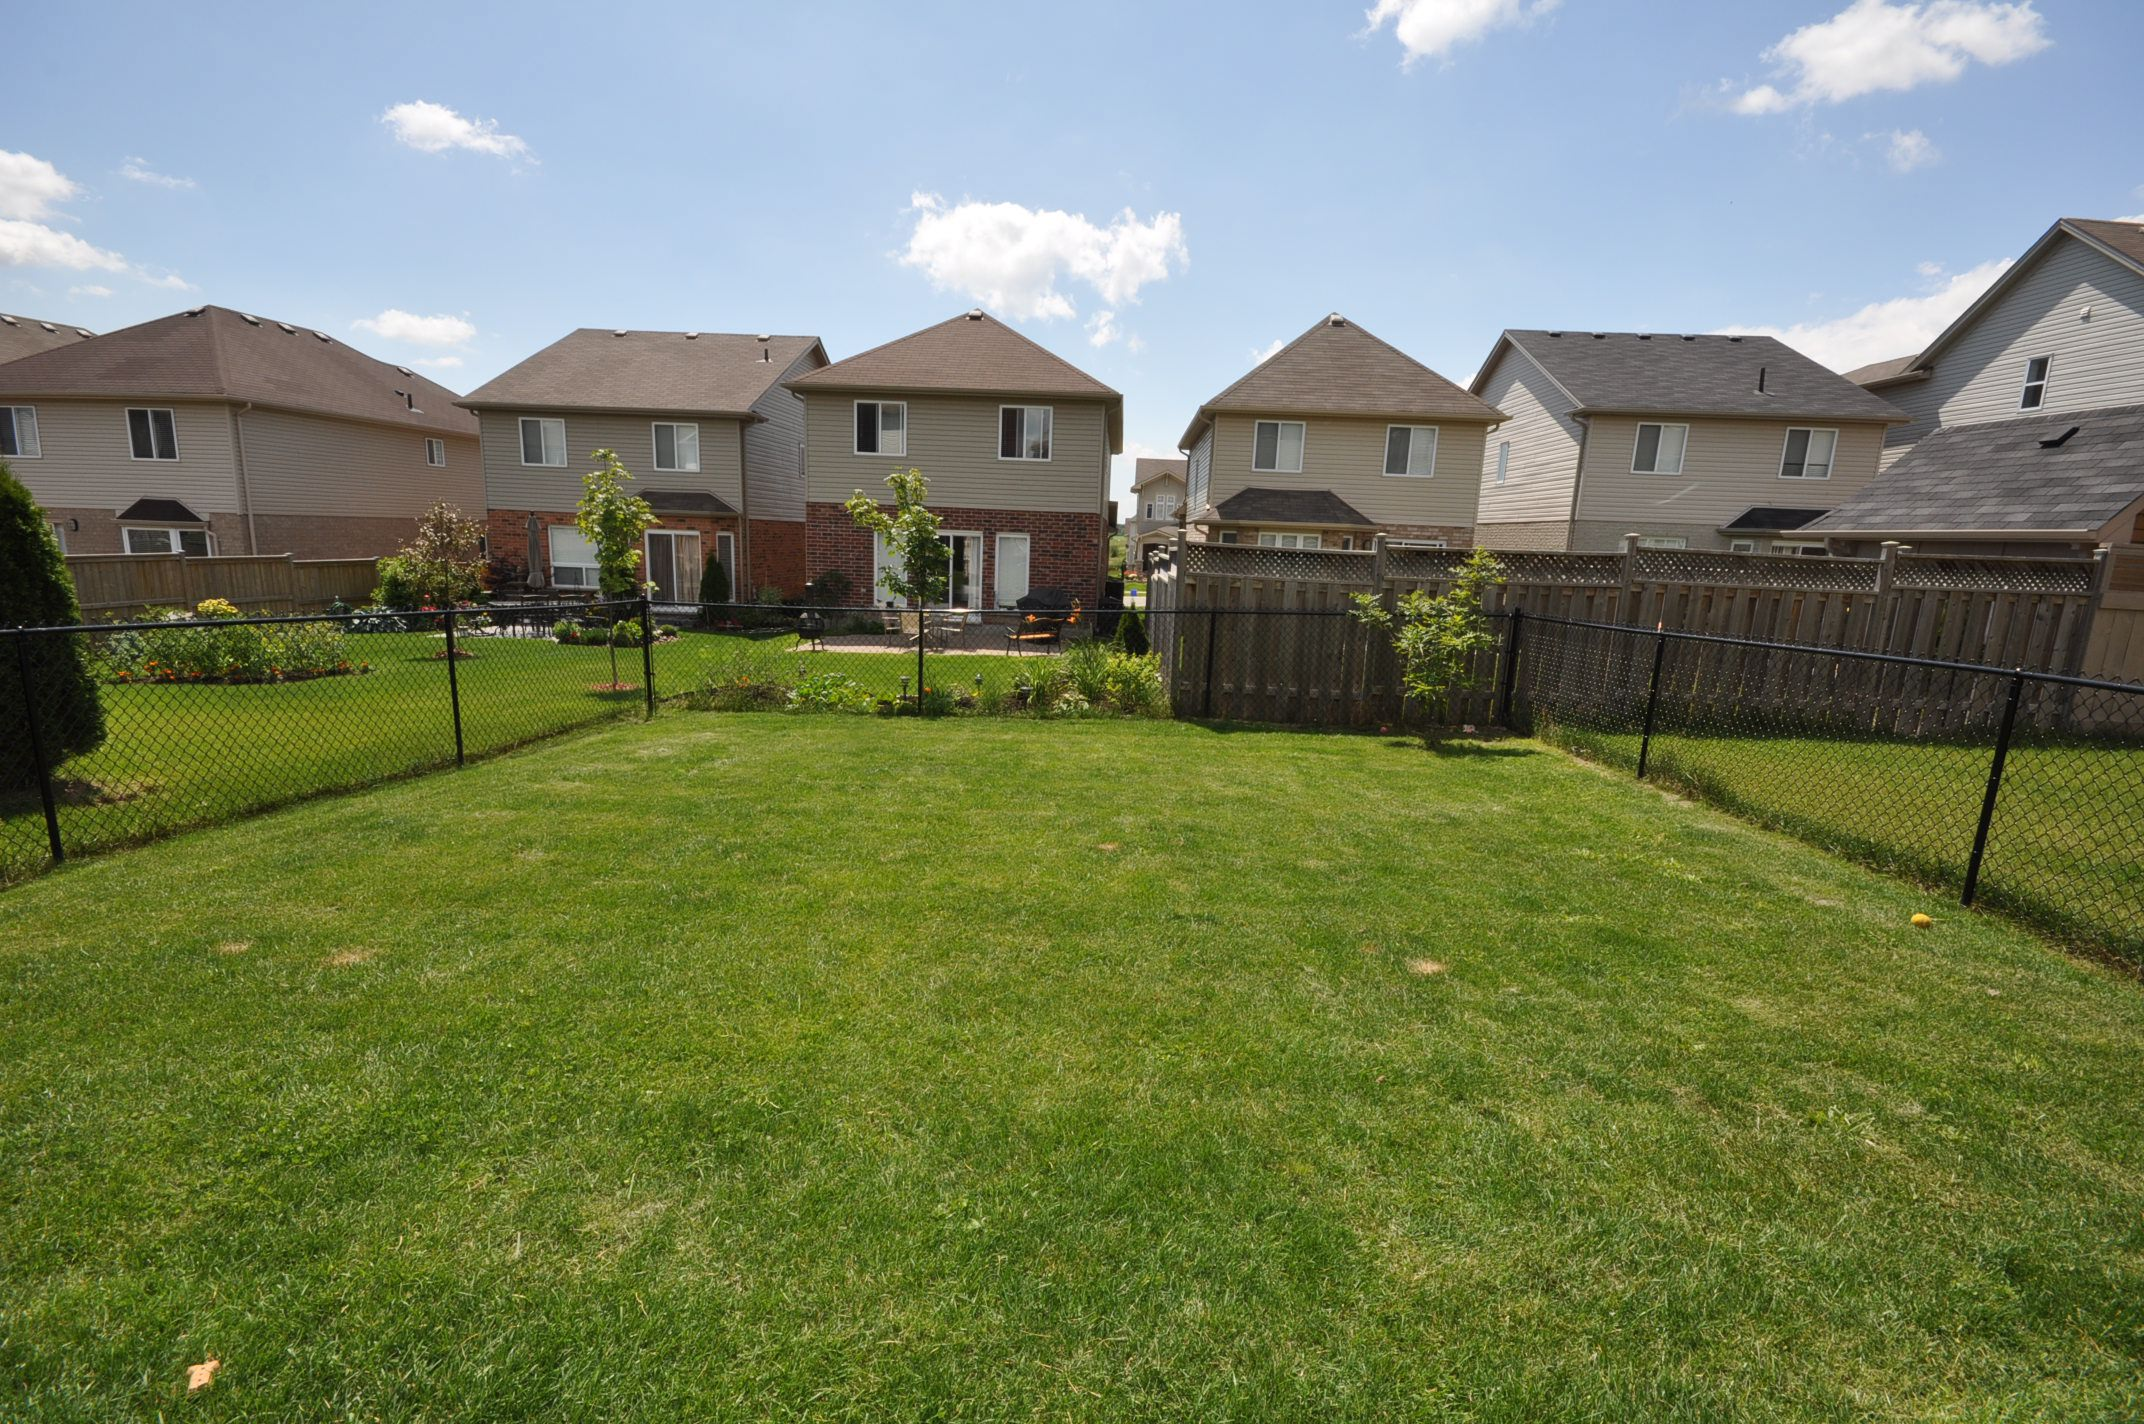 Large fenced backyard